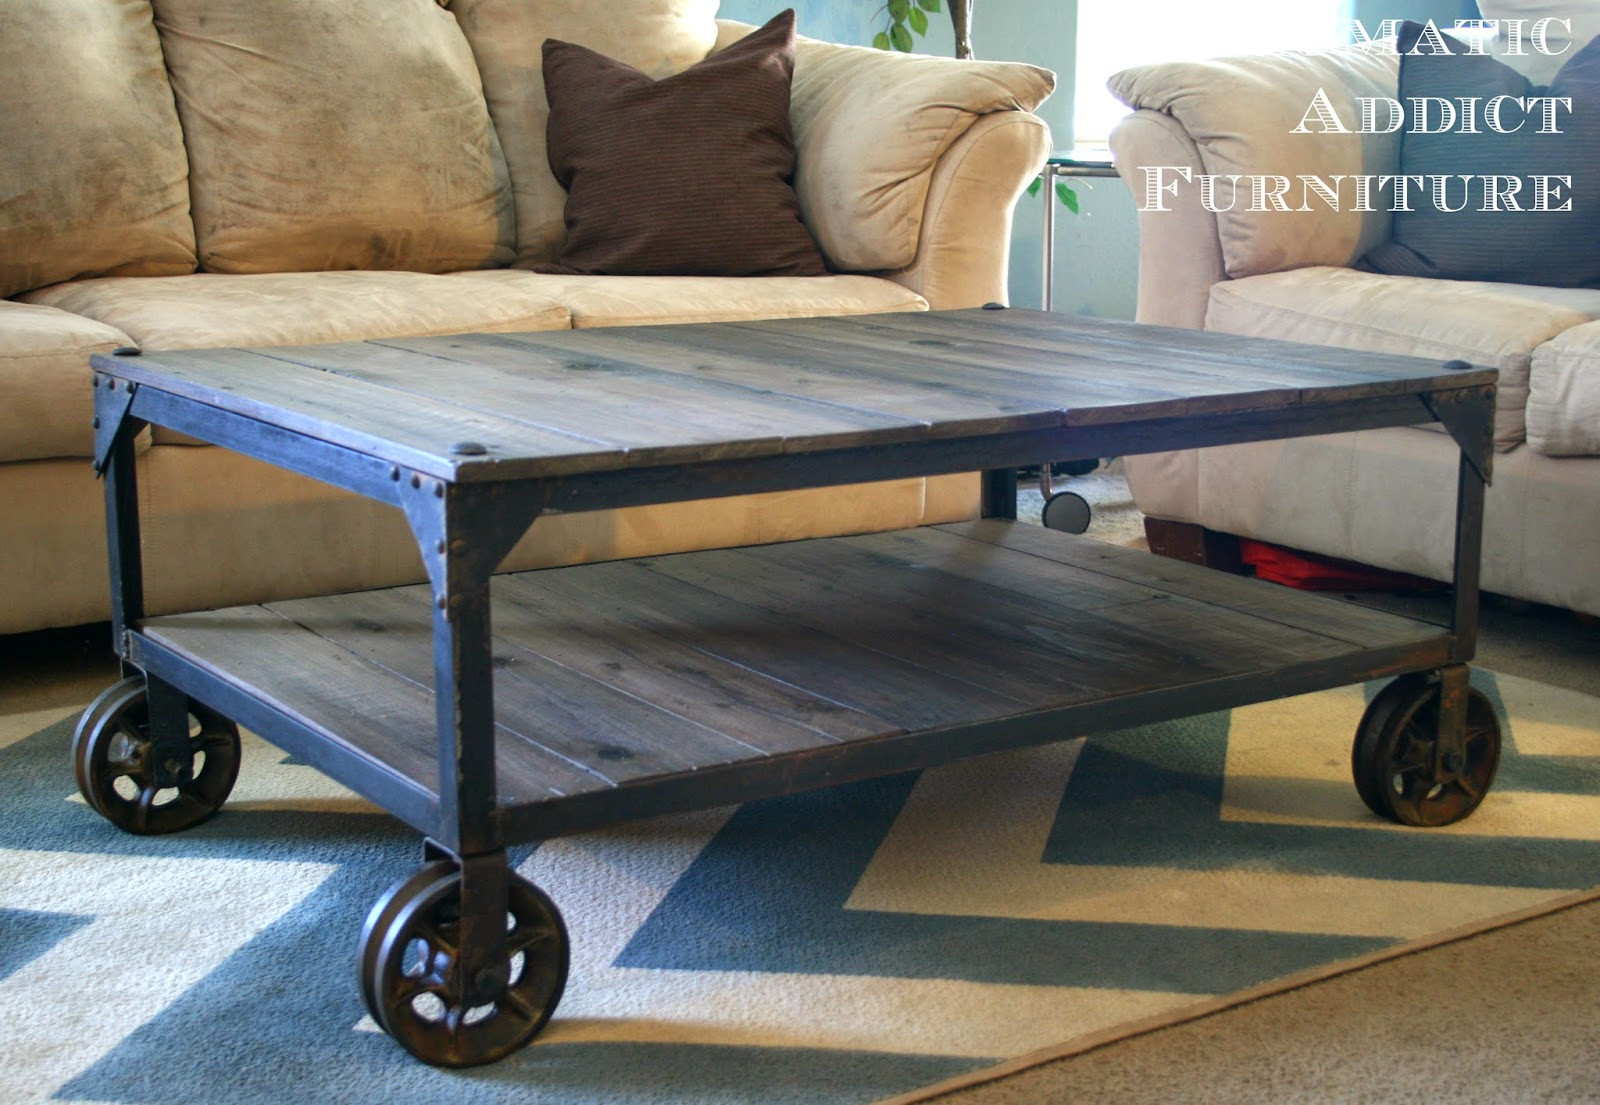 Best ideas about DIY Industrial Table . Save or Pin 50 DIY Industrial Decor Ideas Now.